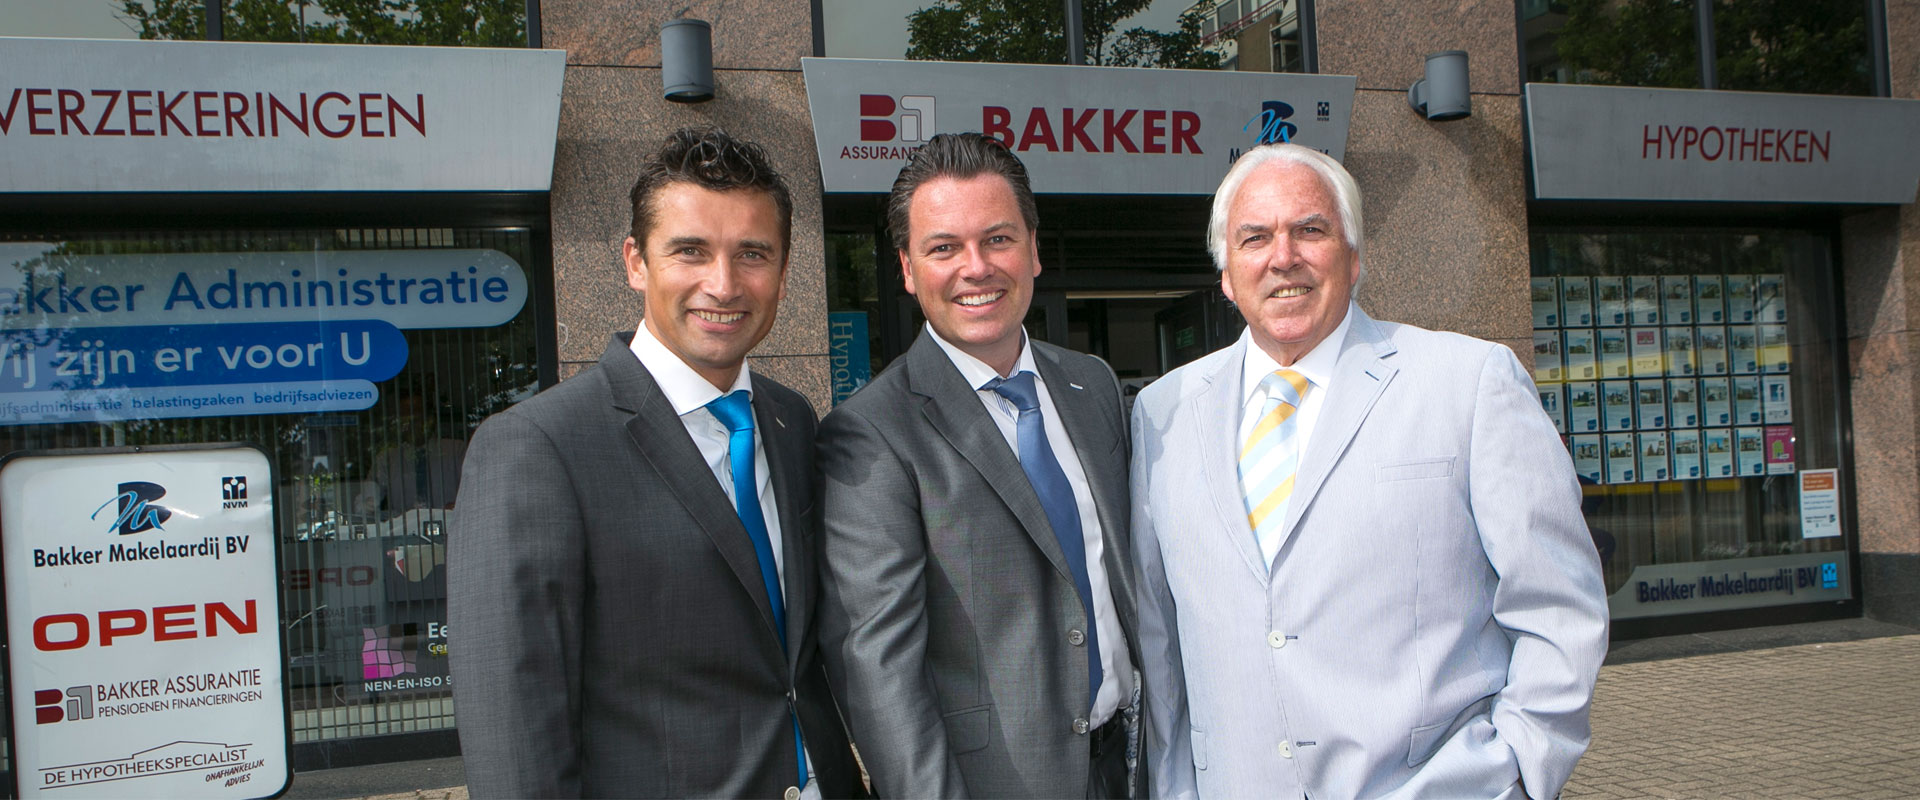 Bakker-Adviesteam